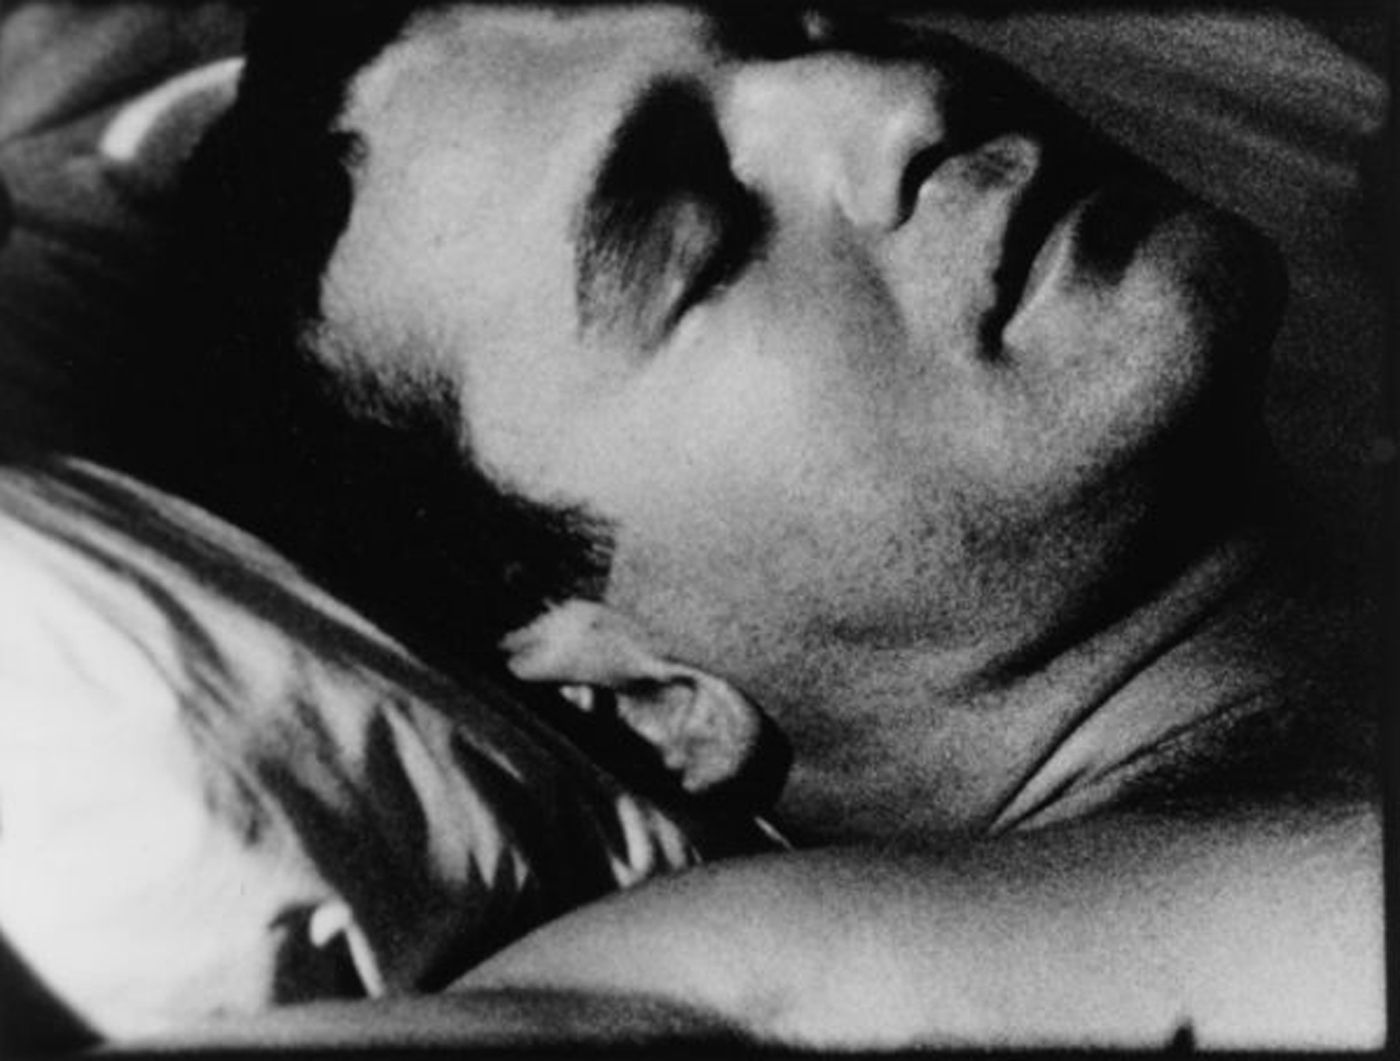 Still from Sleep film by Andy Warhol